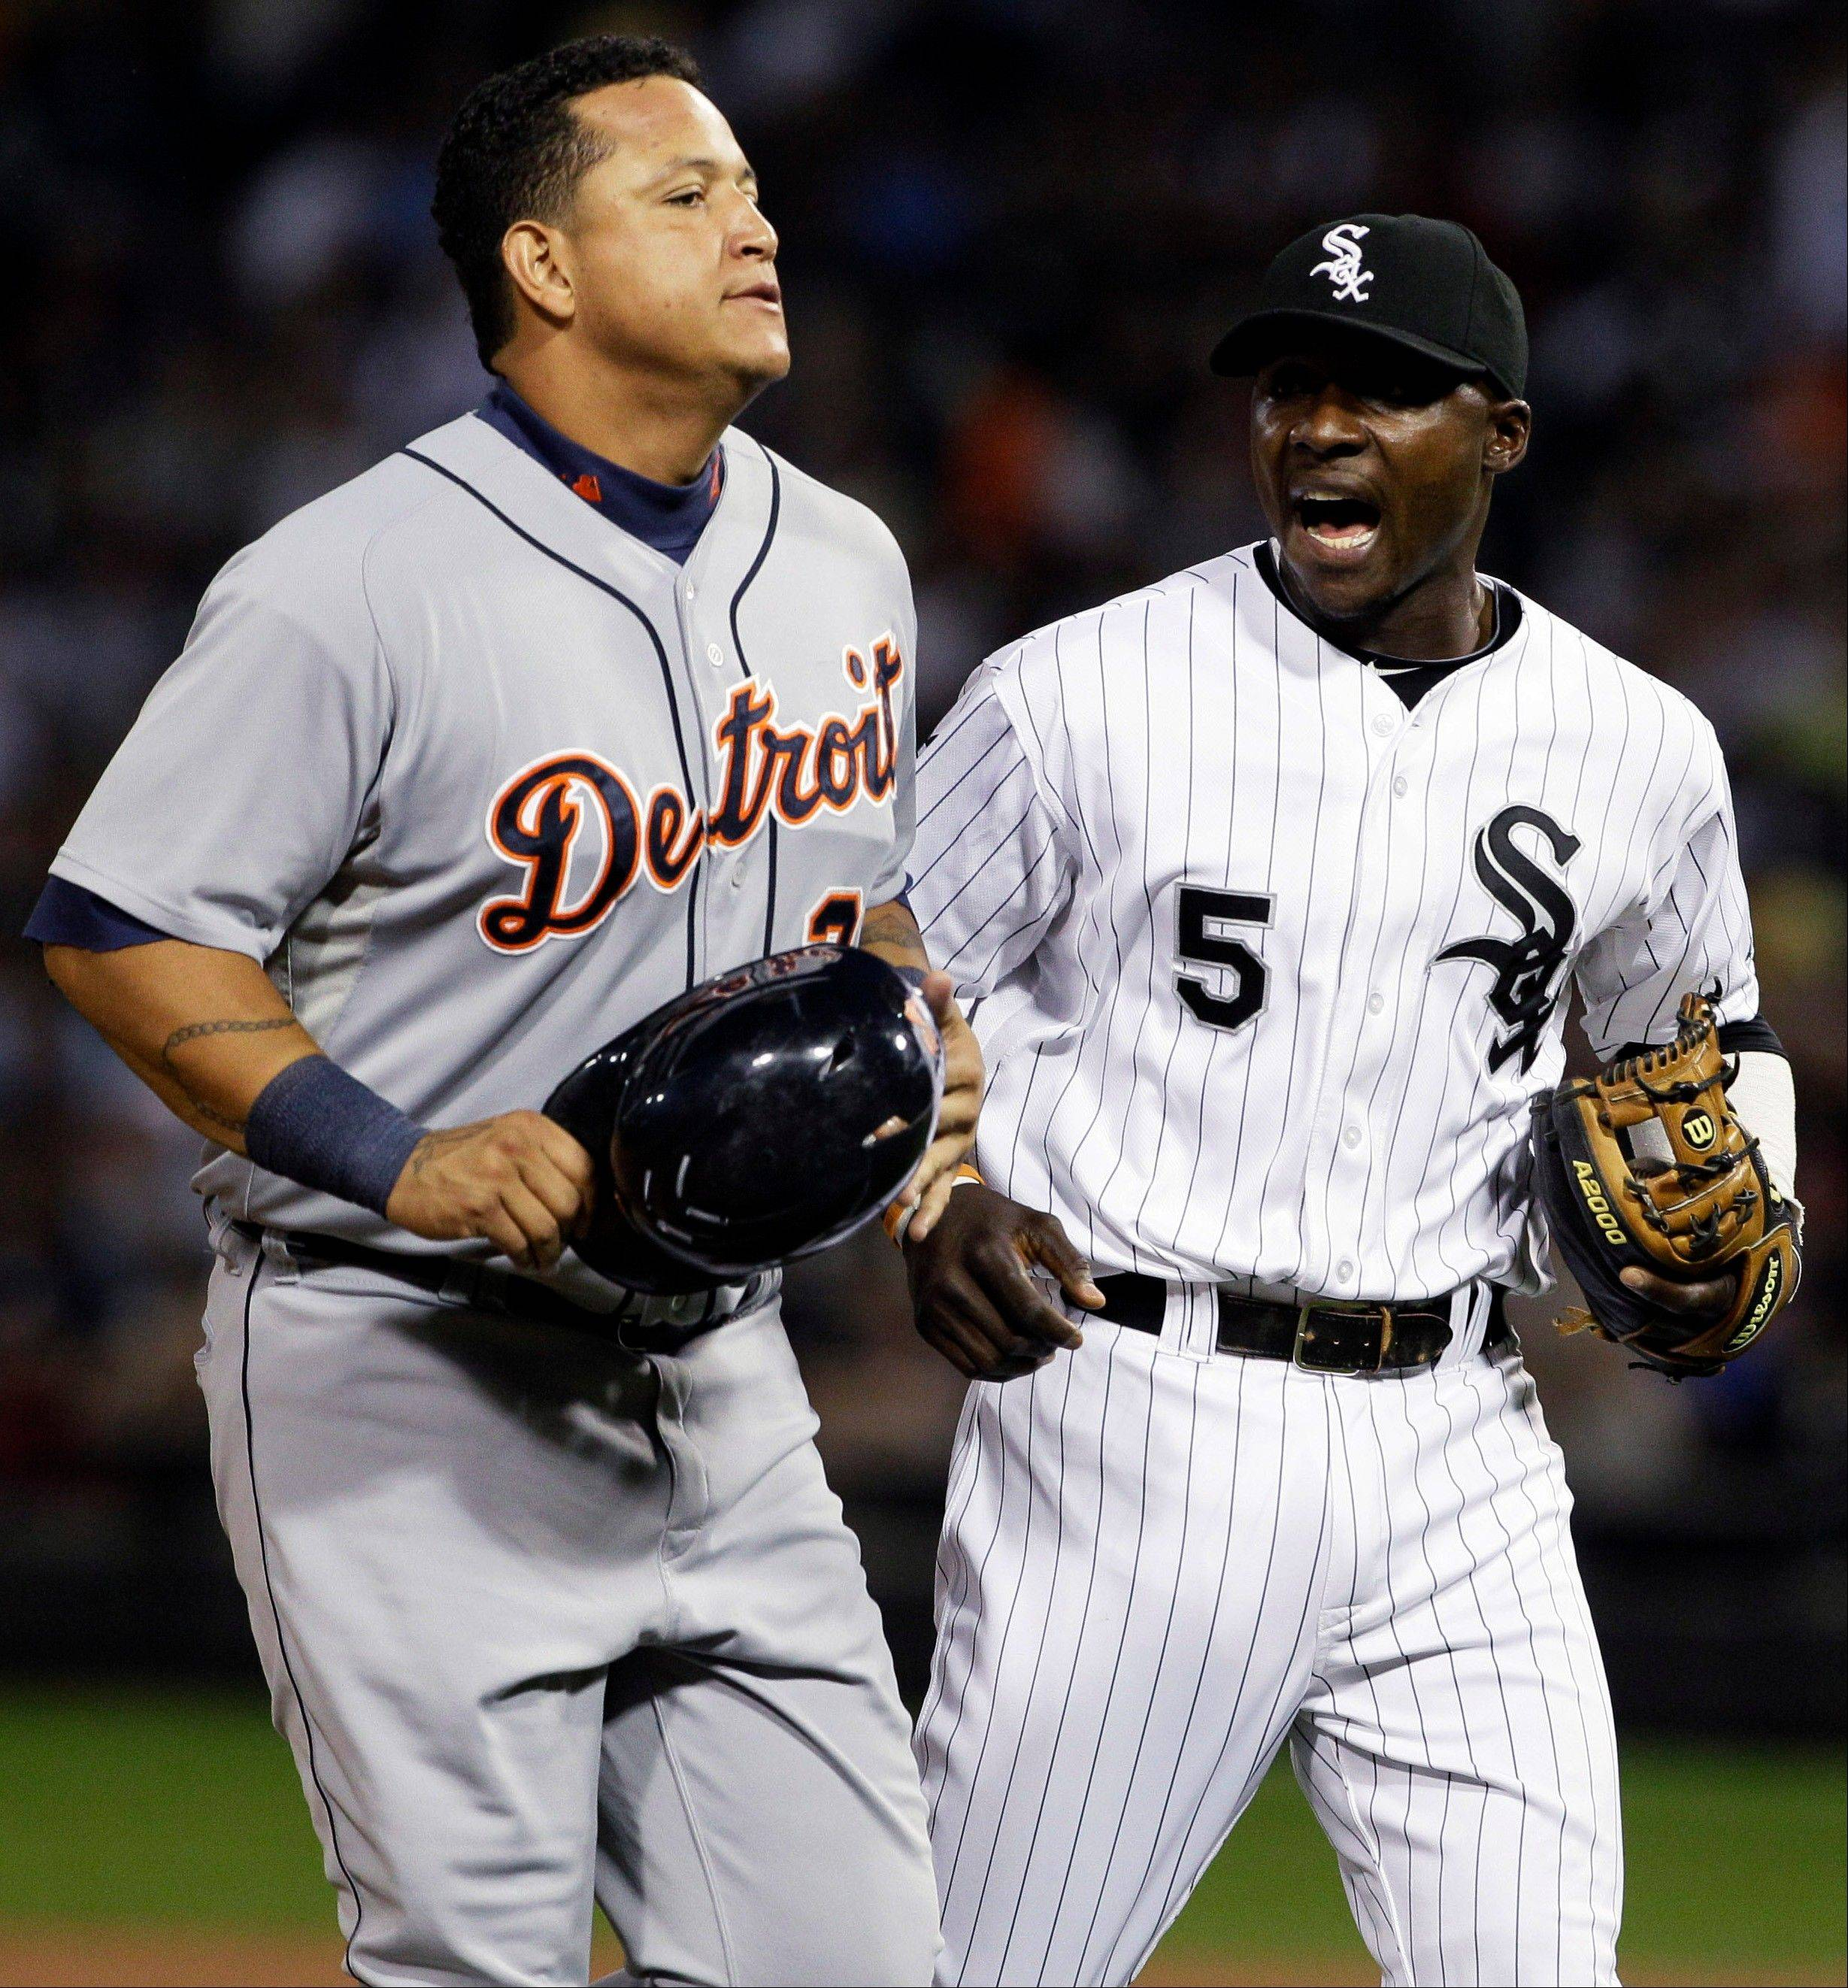 White Sox second baseman Orlando Hudson talks to the Detroit Tigers' Miguel Cabrera Wednesday during the first inning at U.S. Cellular Field.